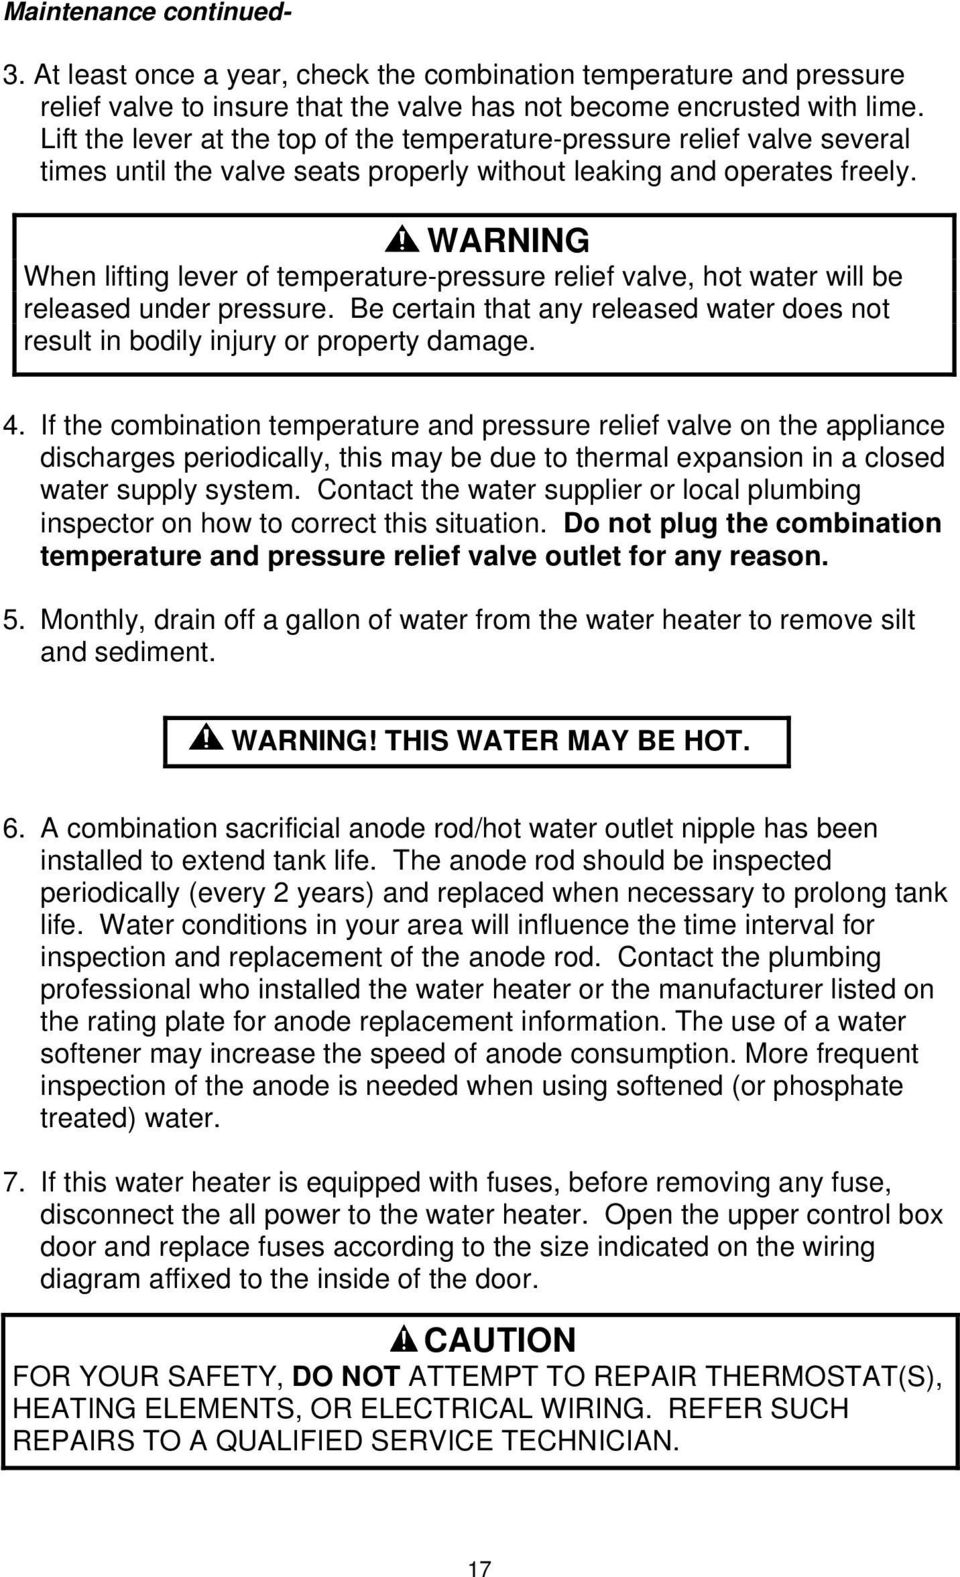 WARNING When lifting lever of temperature-pressure relief valve, hot water will be released under pressure. Be certain that any released water does not result in bodily injury or property damage. 4.